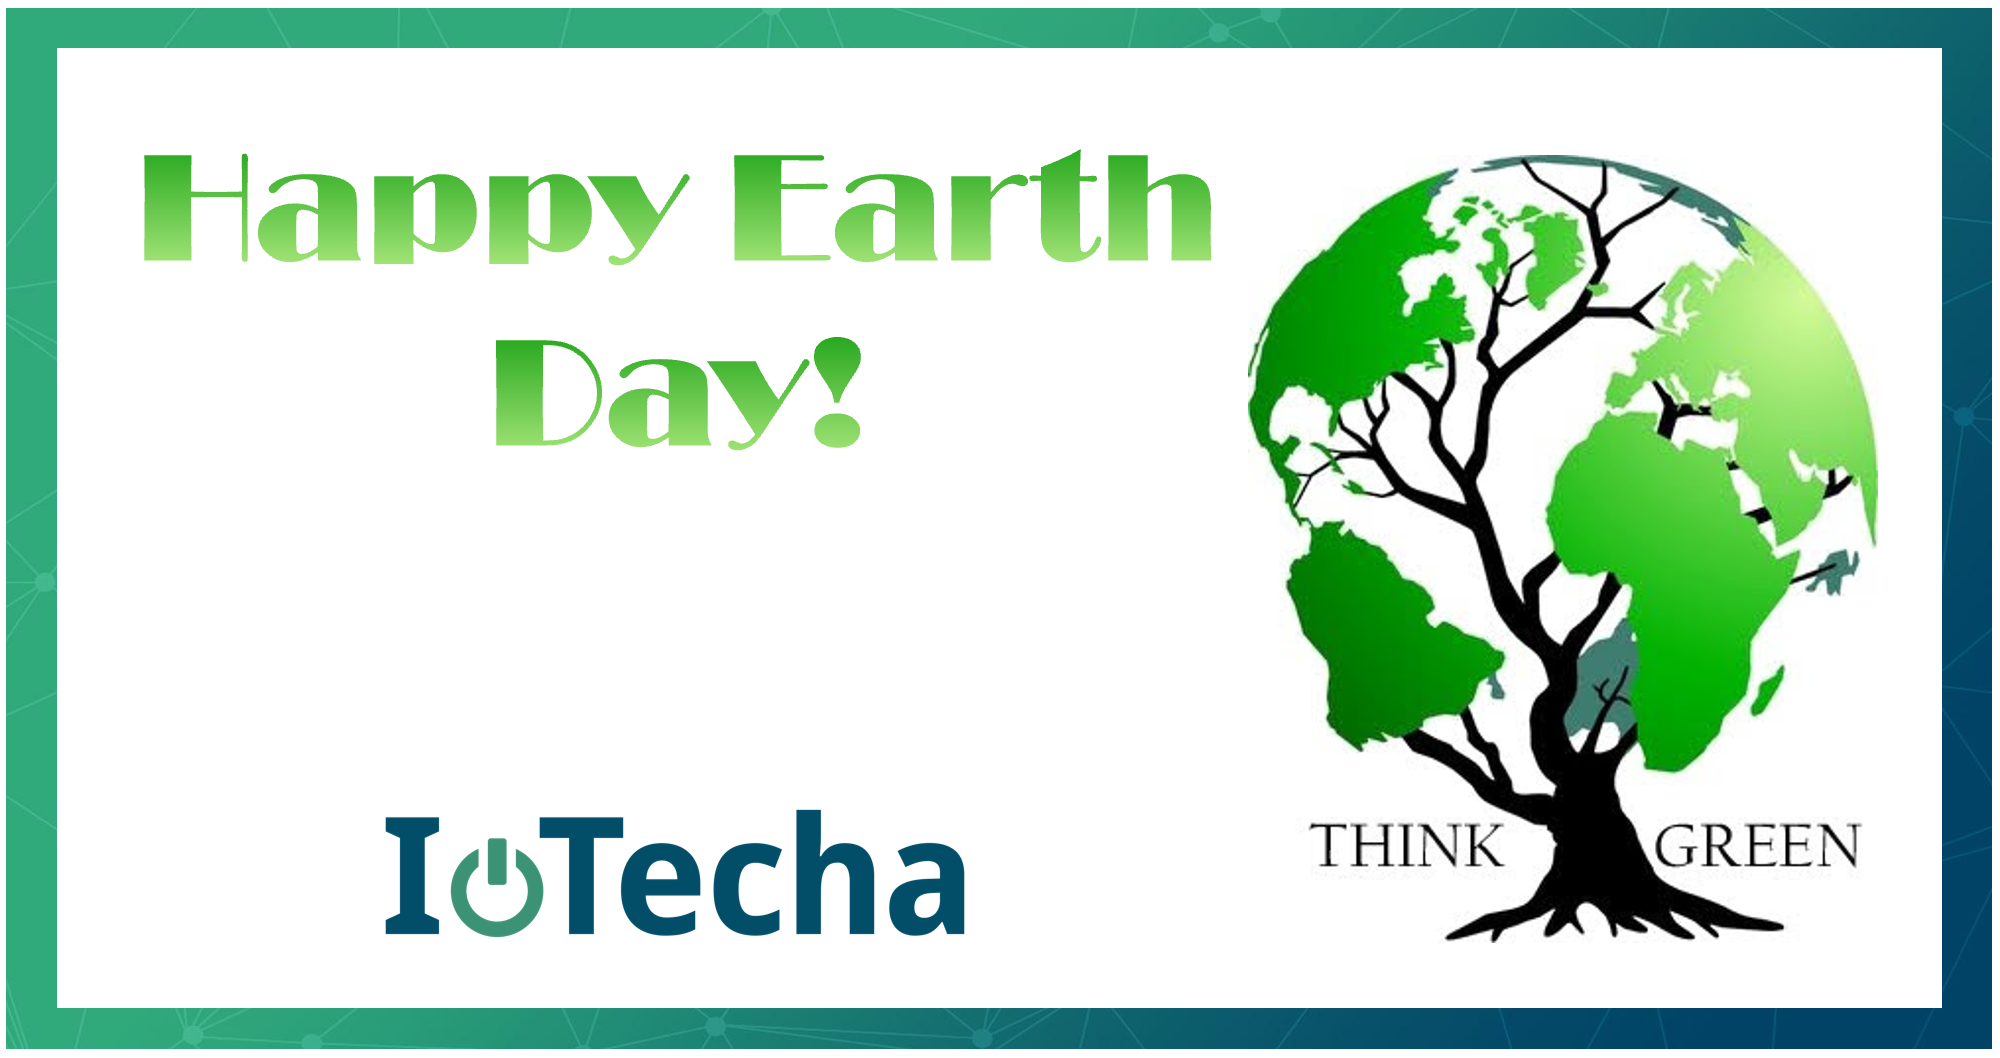 IoTecha Marks Earth Day 2021 by Introducing a new Data Driven Experience to EV Charging!